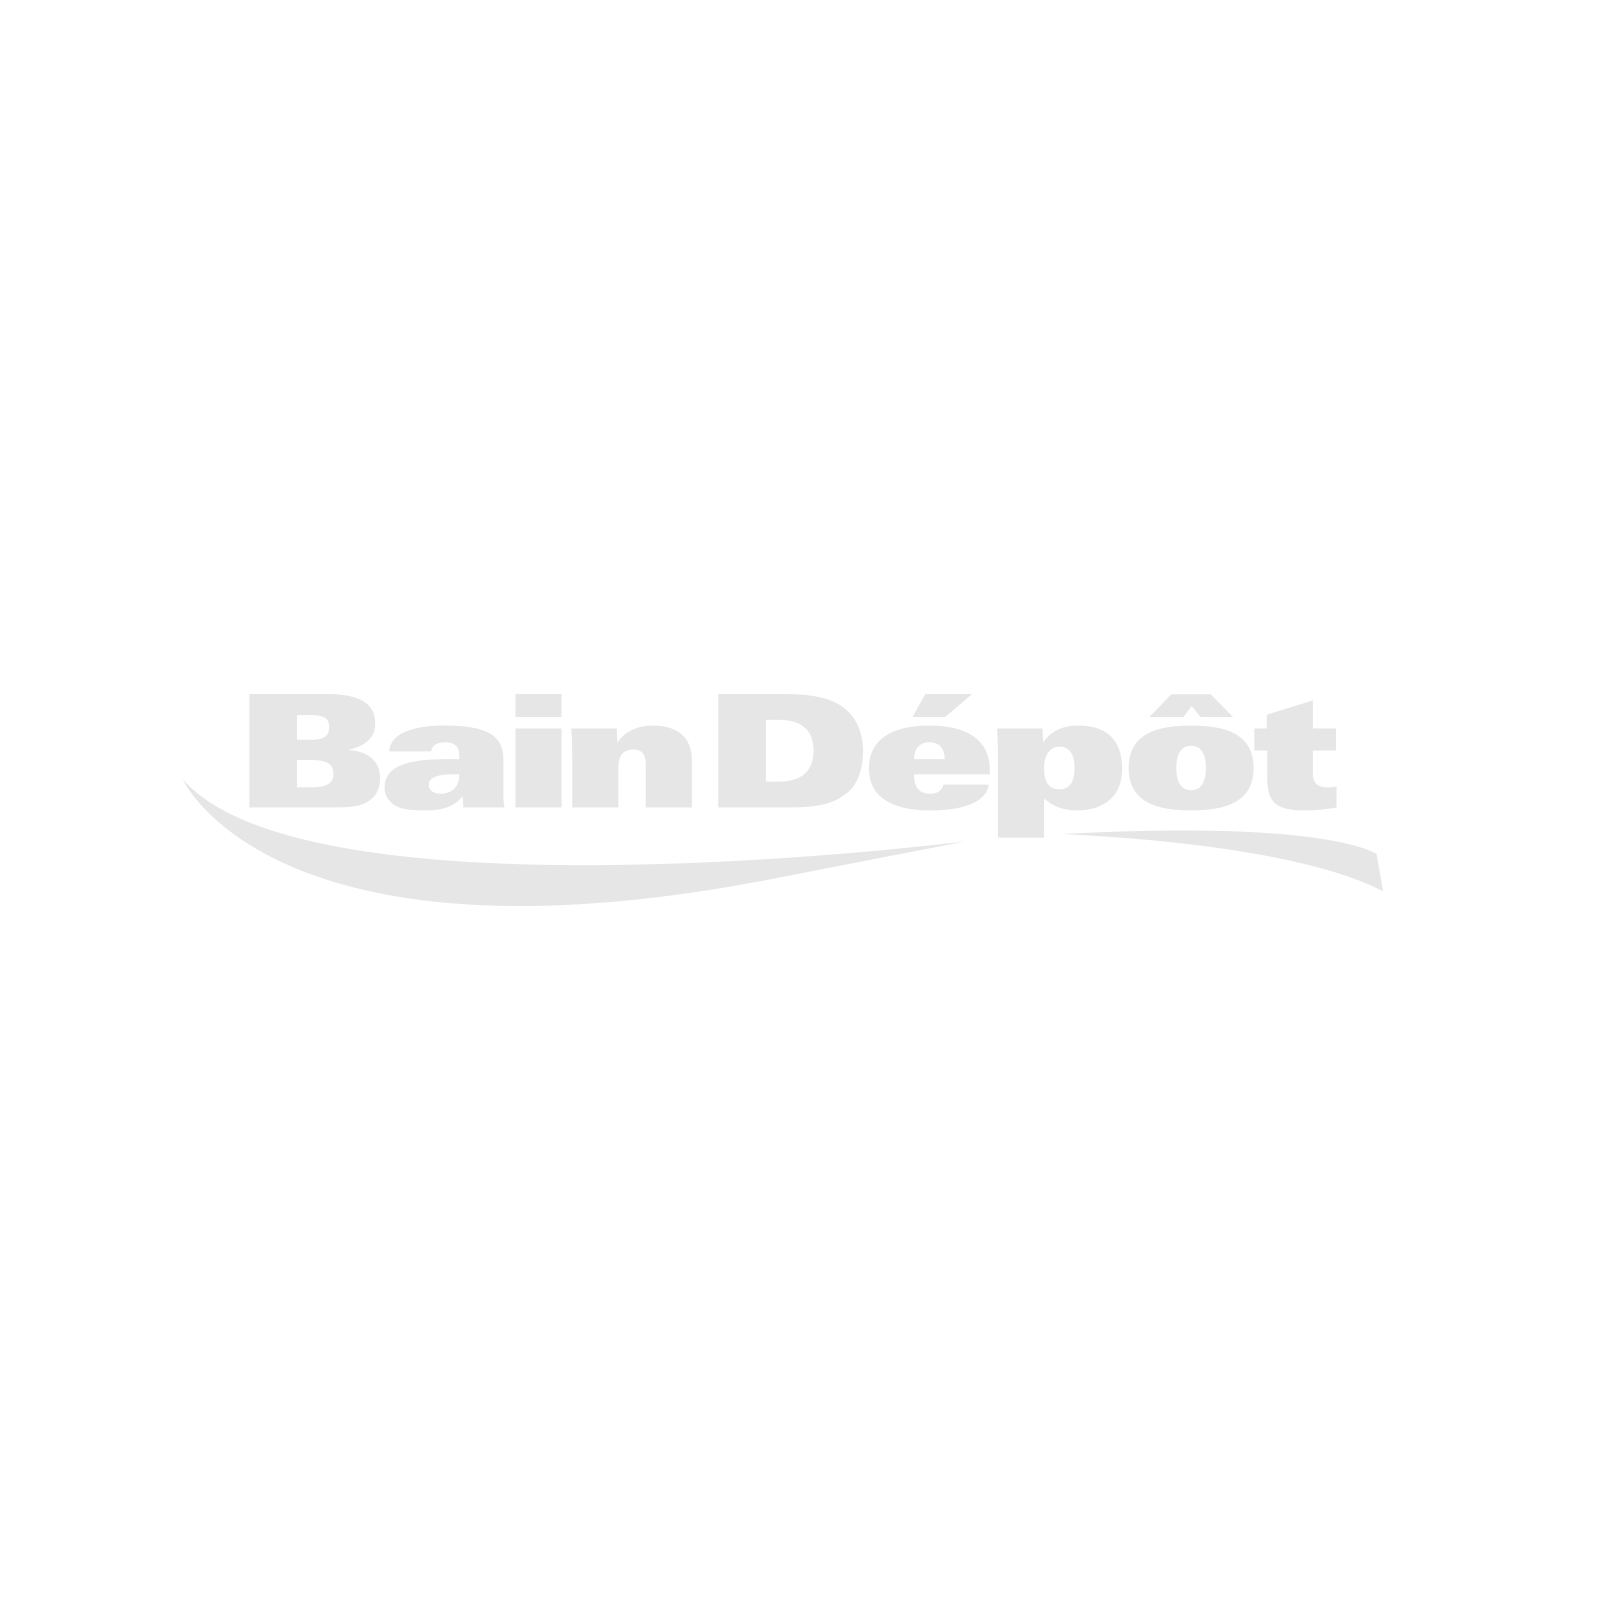 Brushed nickel single-hole square bathroom sink faucet with pop-up